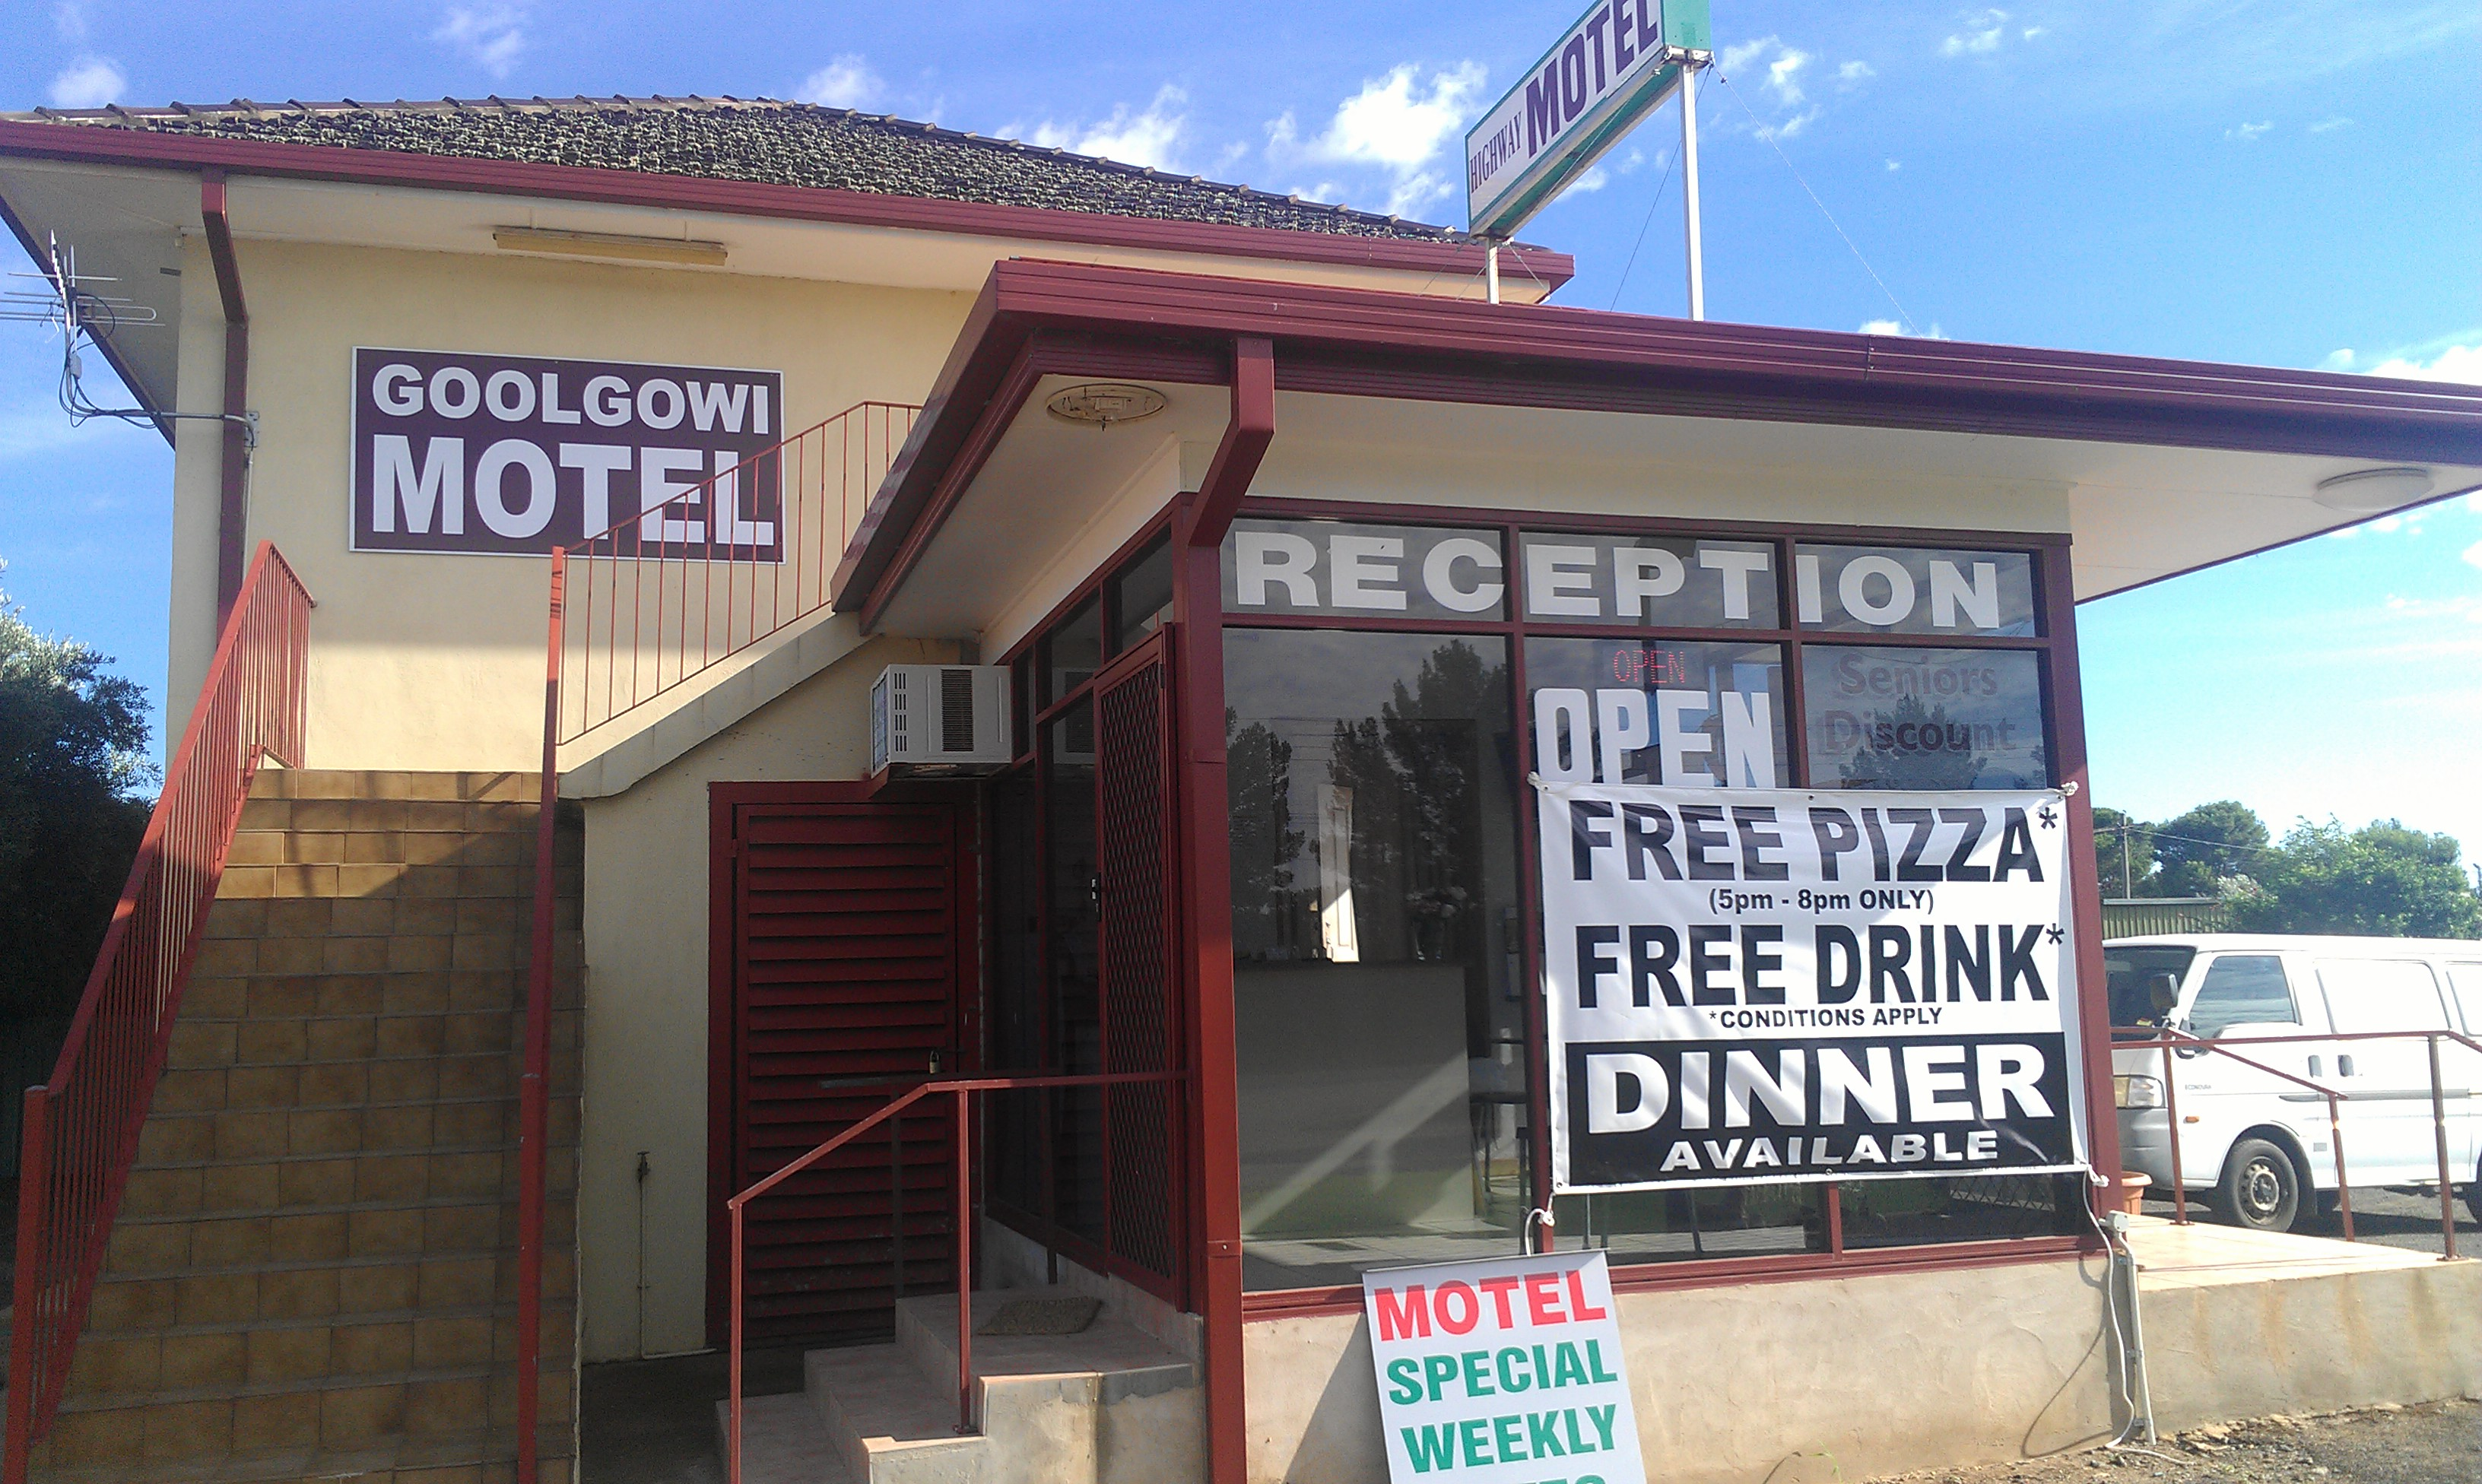 Royal Mail Hotel Goolgowi - Byron Bay Accommodations